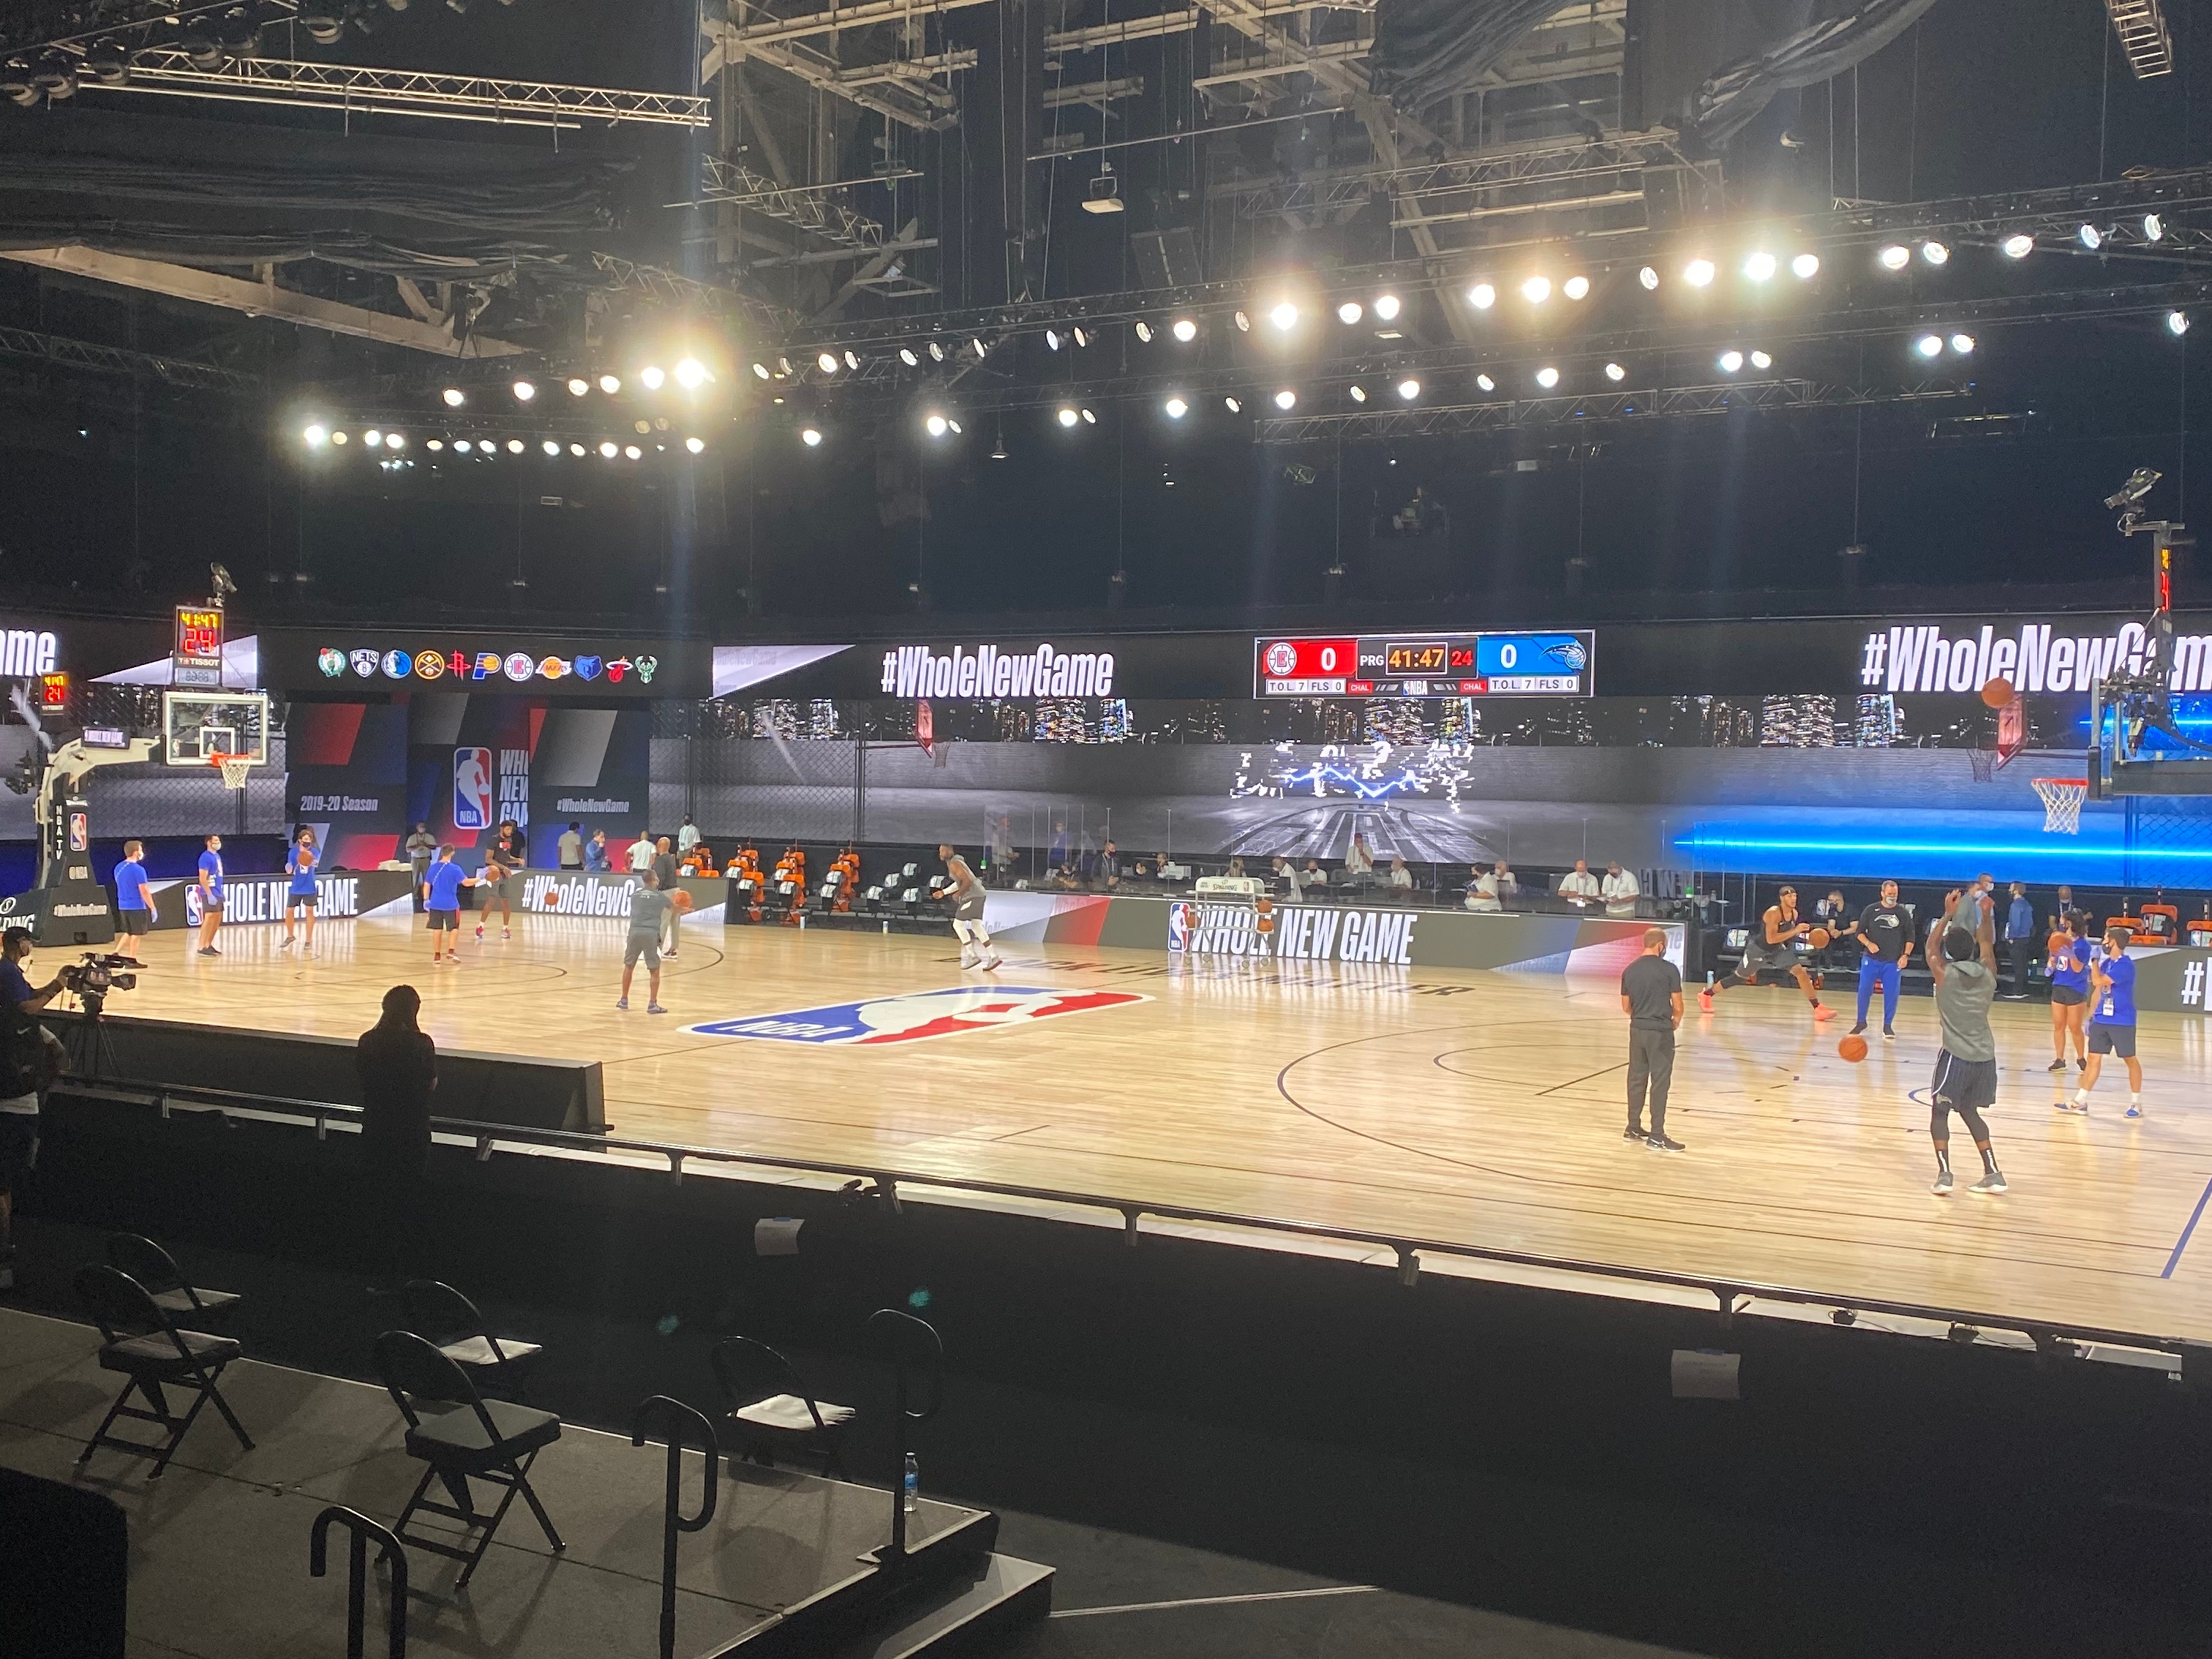 Nba Begins Bubble Scrimmages On A Made For Tv Stage At Disney The Washington Post